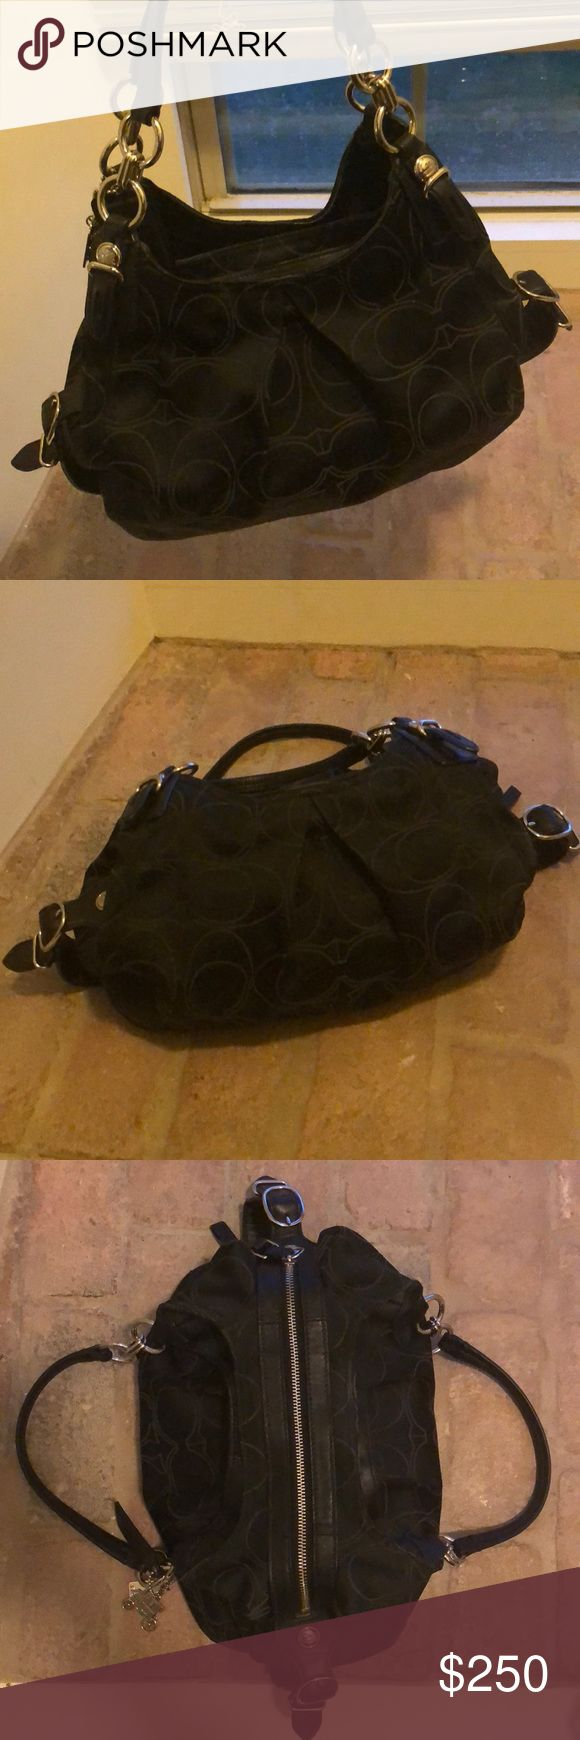 Beautiful black Coach purse— like new! Beautiful black Coach purse with deep purple lining— like new! Used for only one season and kept protected in a dust bag. Great condition! Coach Bags Shoulder Bags